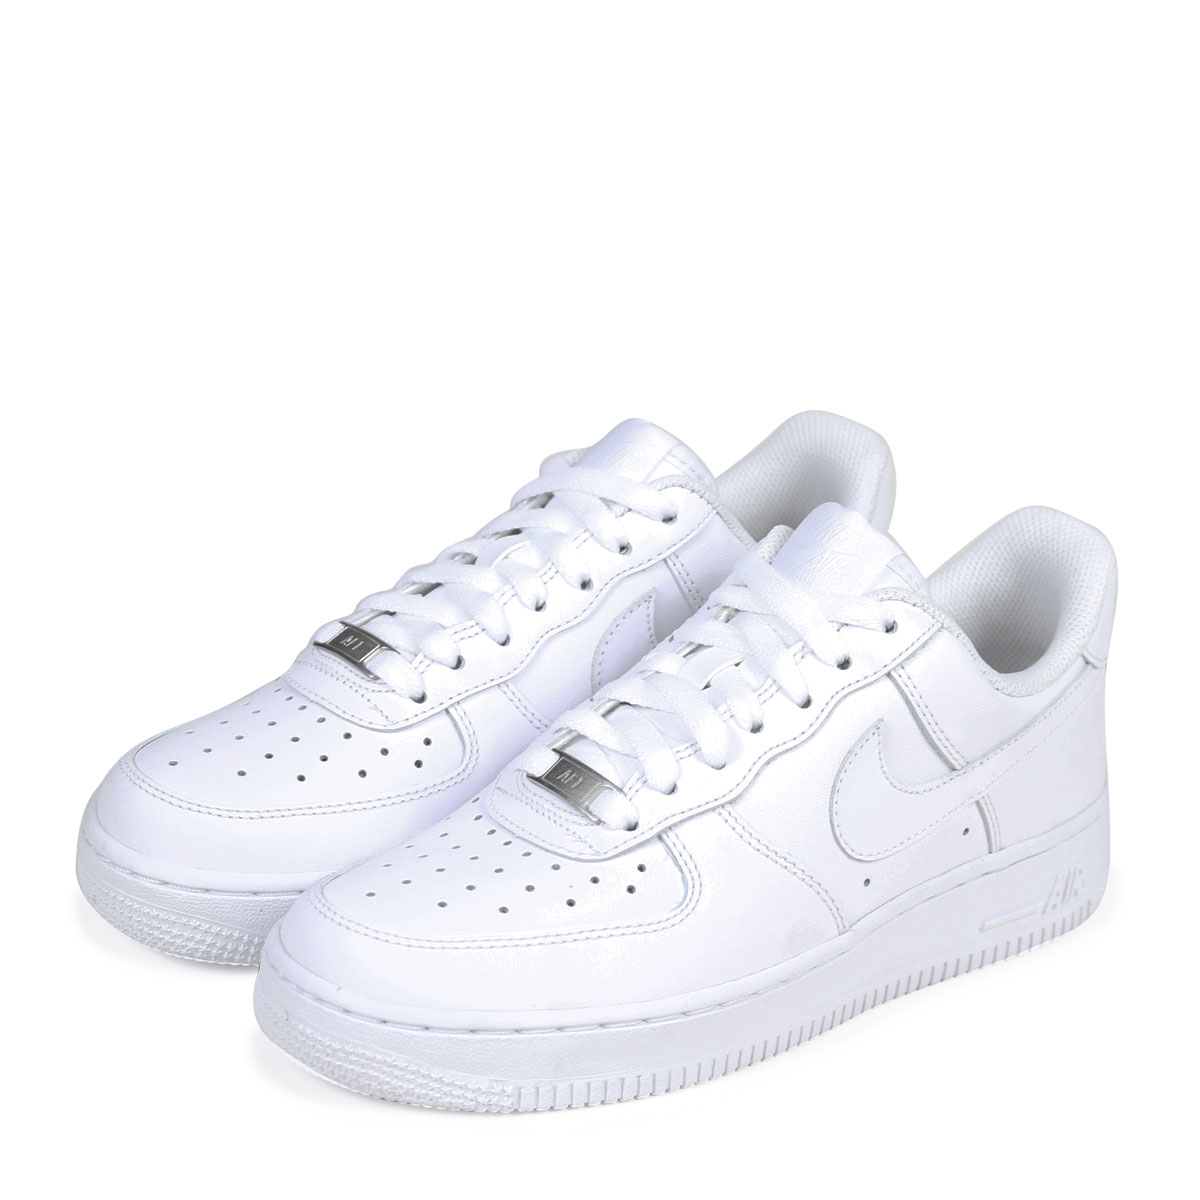 Nike NIKE air force 1 sneakers Lady's WMNS AIR FORCE 1 07 white 315,115 112 [the 213 additional arrival]